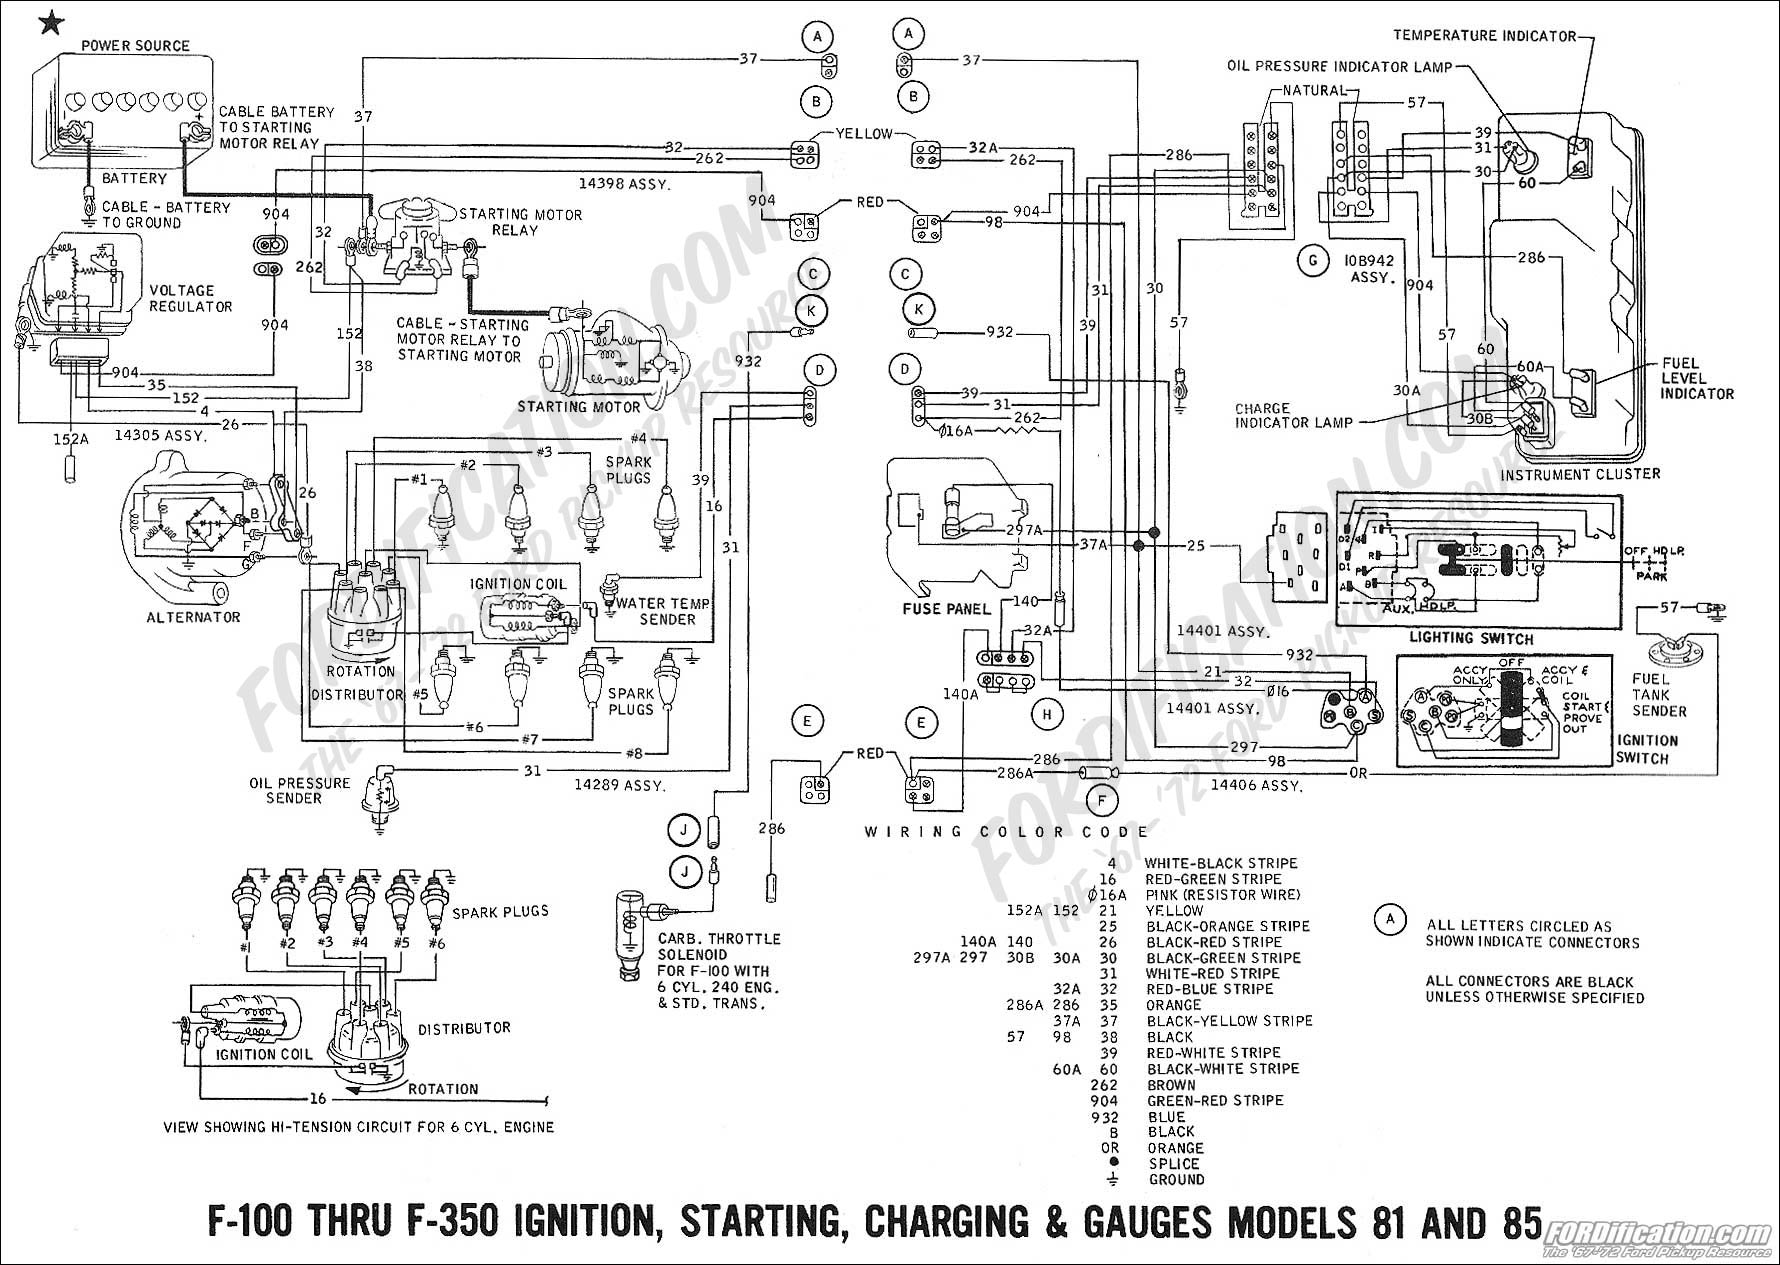 379 Peterbilt Trucks Wiring Diagrams Turn Diagram Services Stereo For 2001 Vw Beetle Schematics Ignition Find U2022 Rh Empcom Co